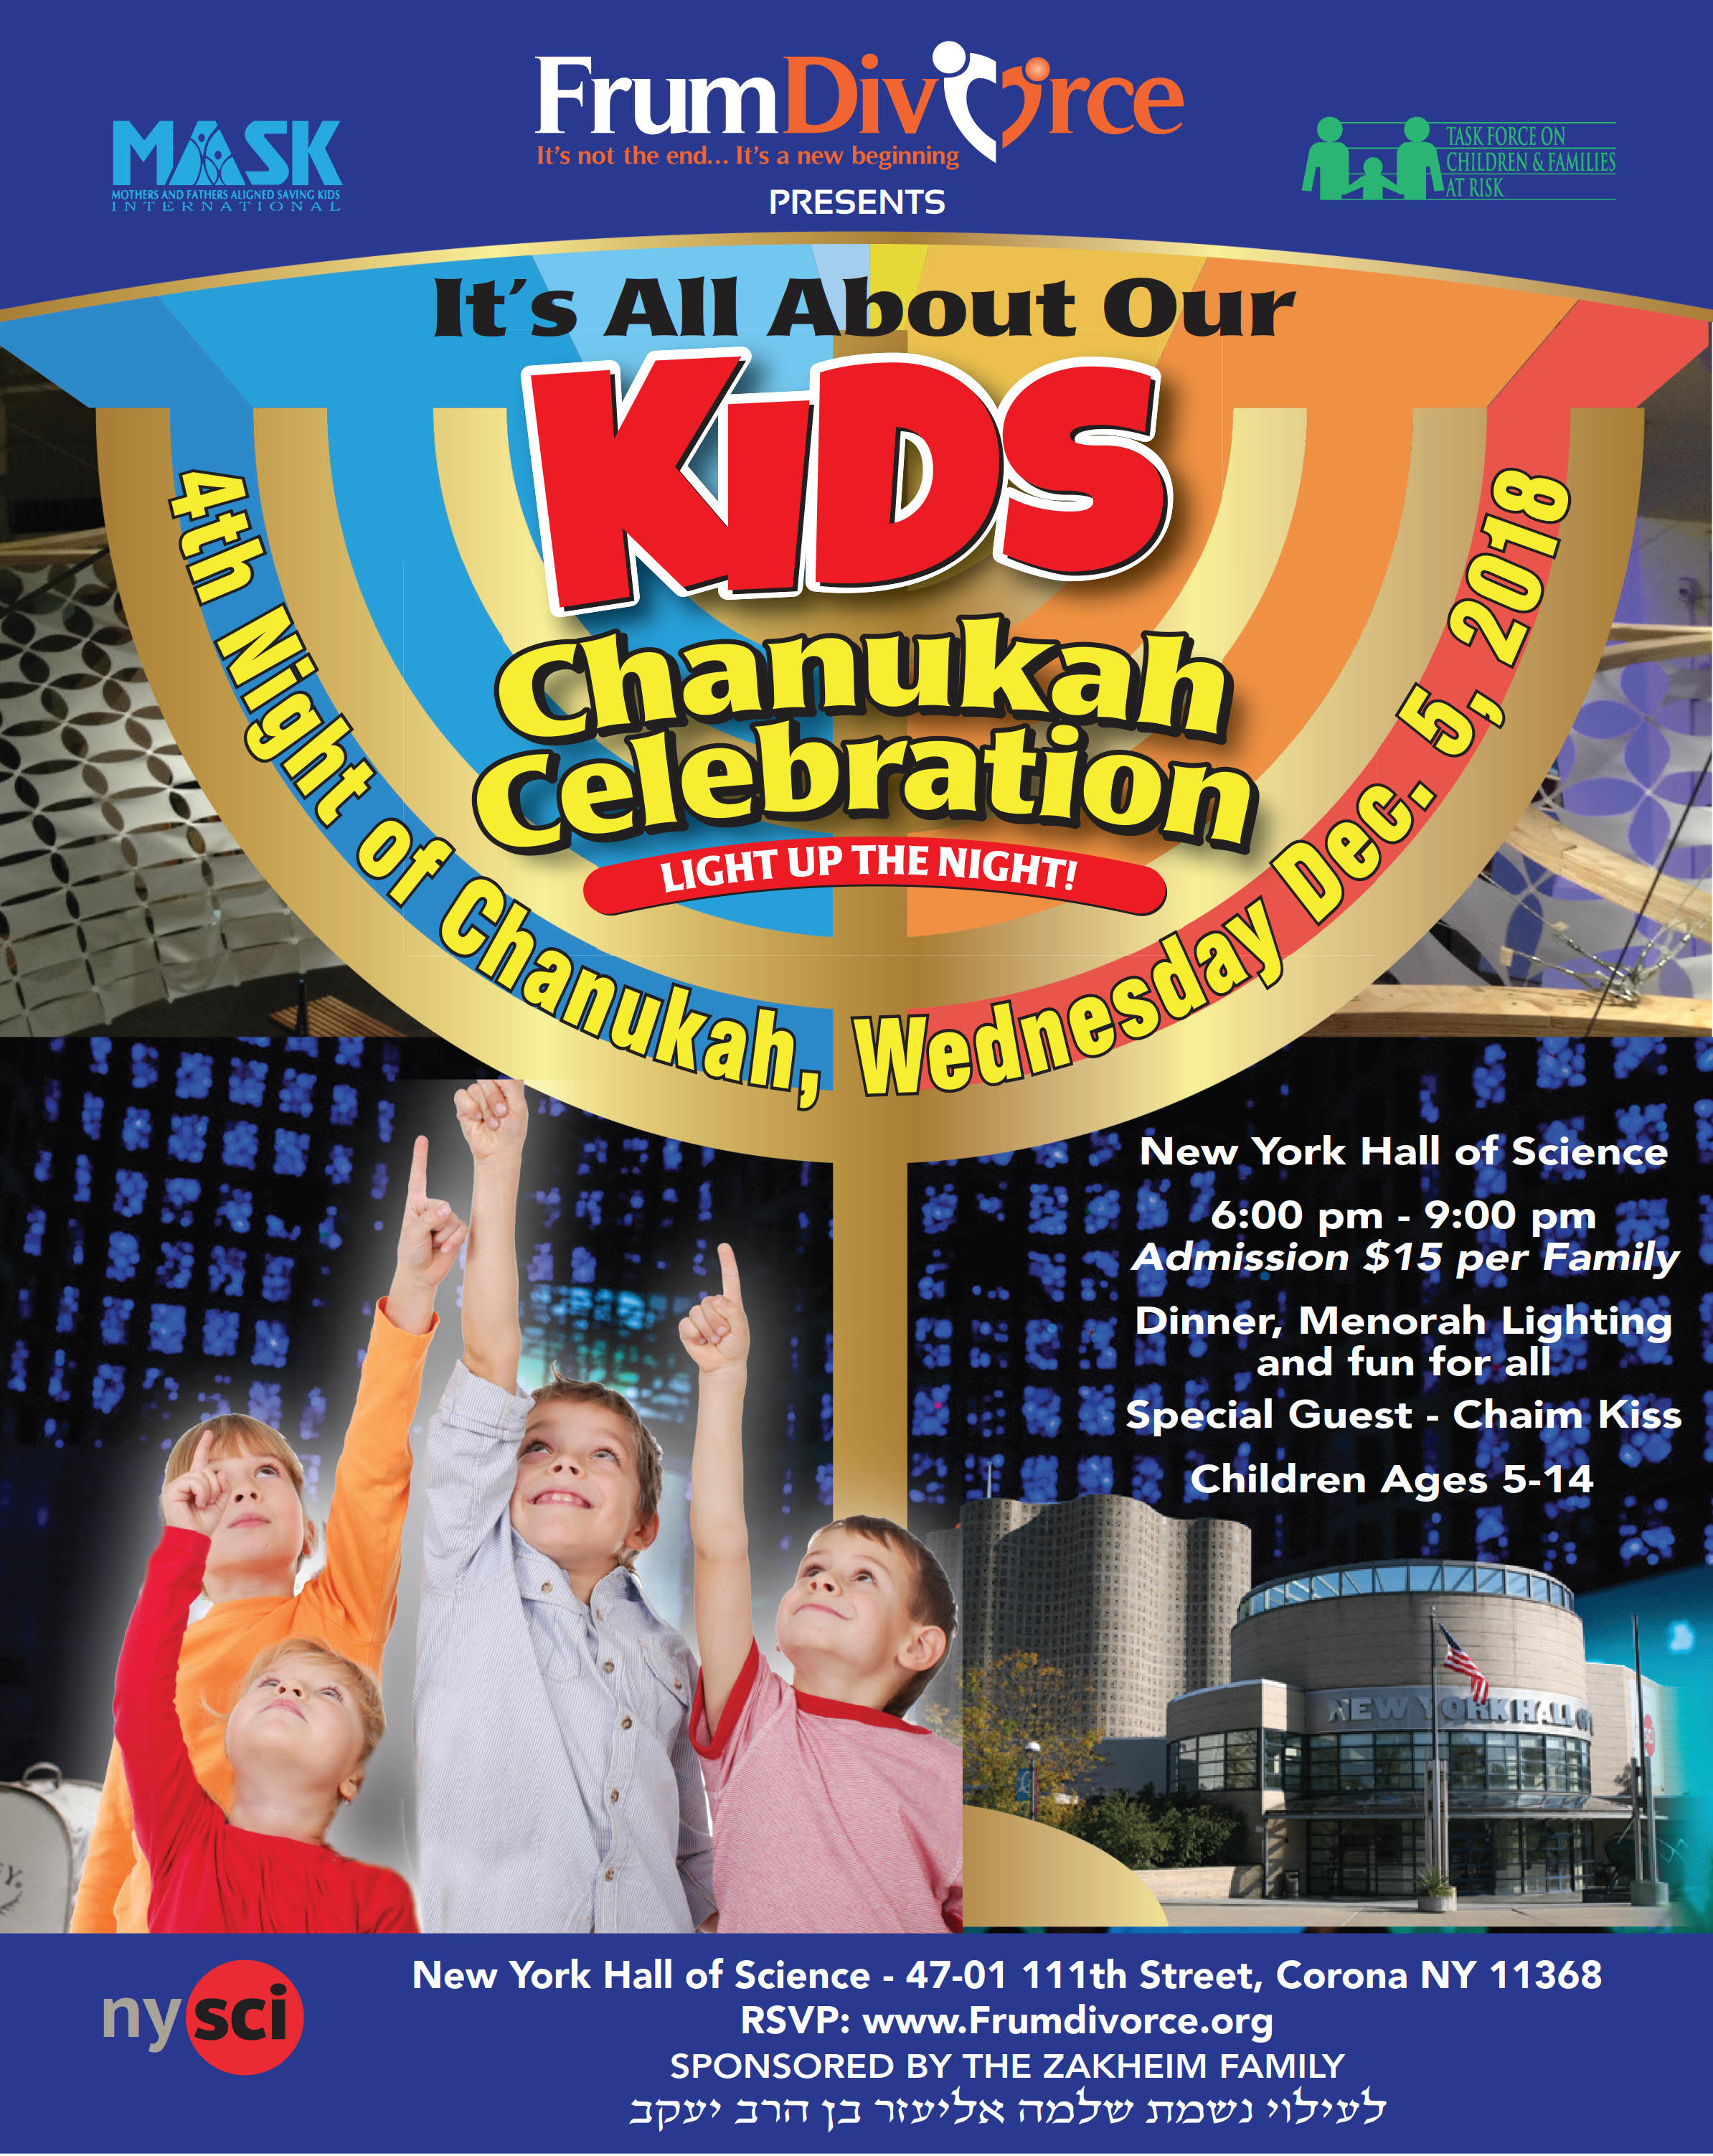 Chanukah Celebration: It's All About Our Kids!